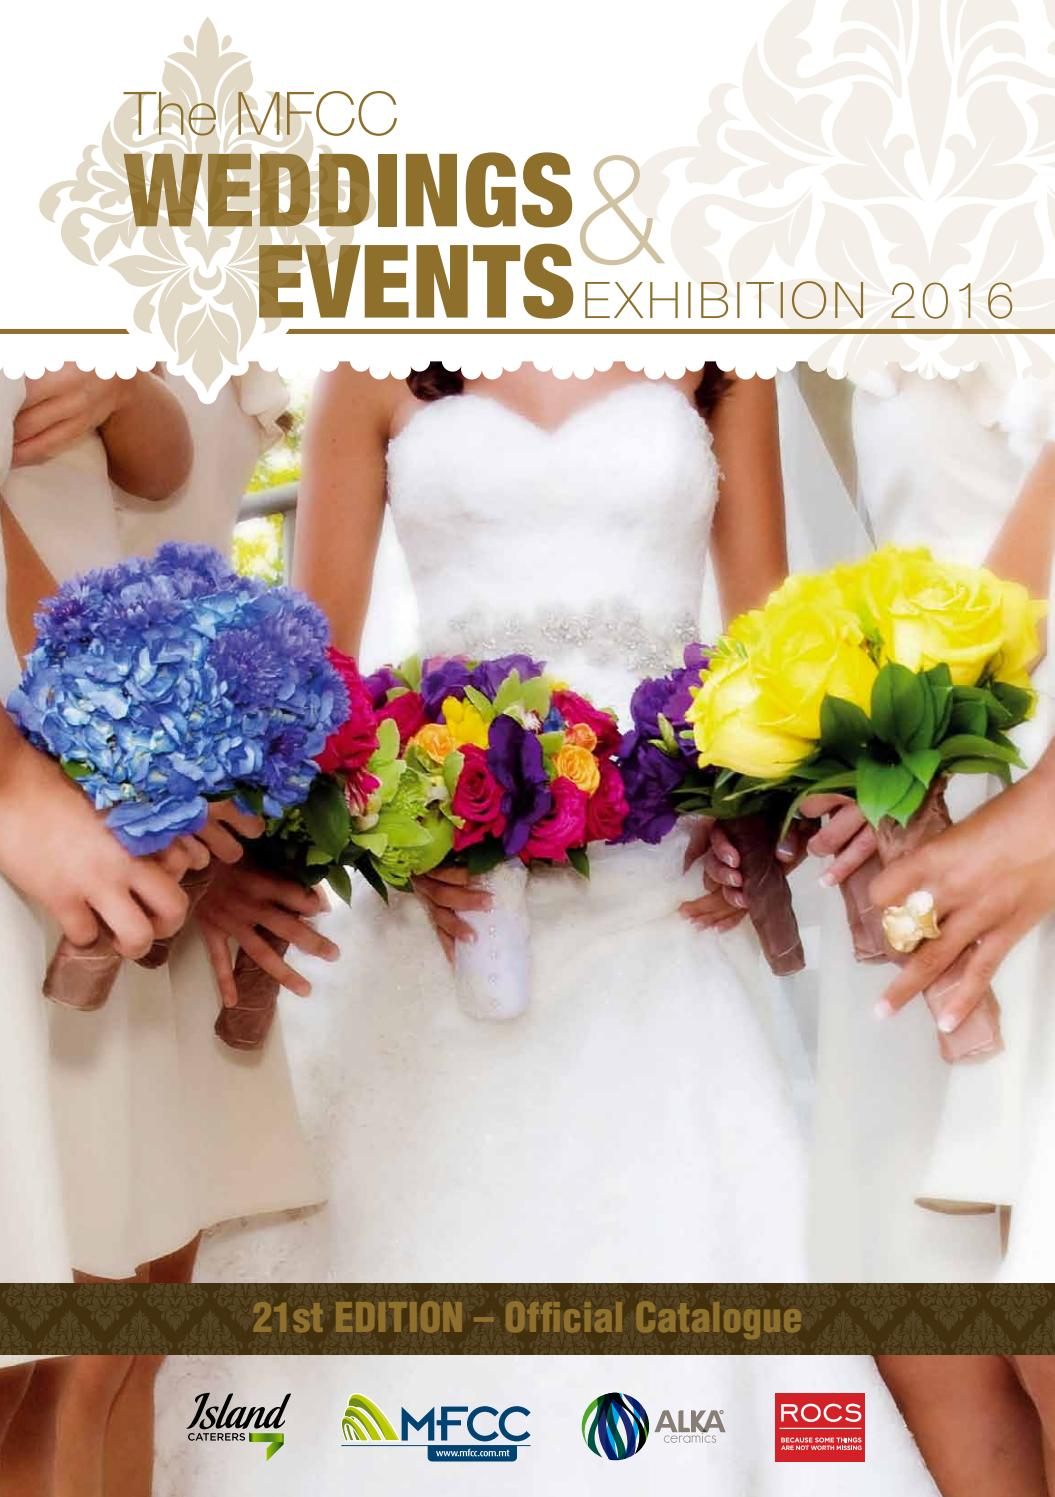 Interni Attaguile Grammichele Ct weddings & events exhibition 2016 official catalogue by